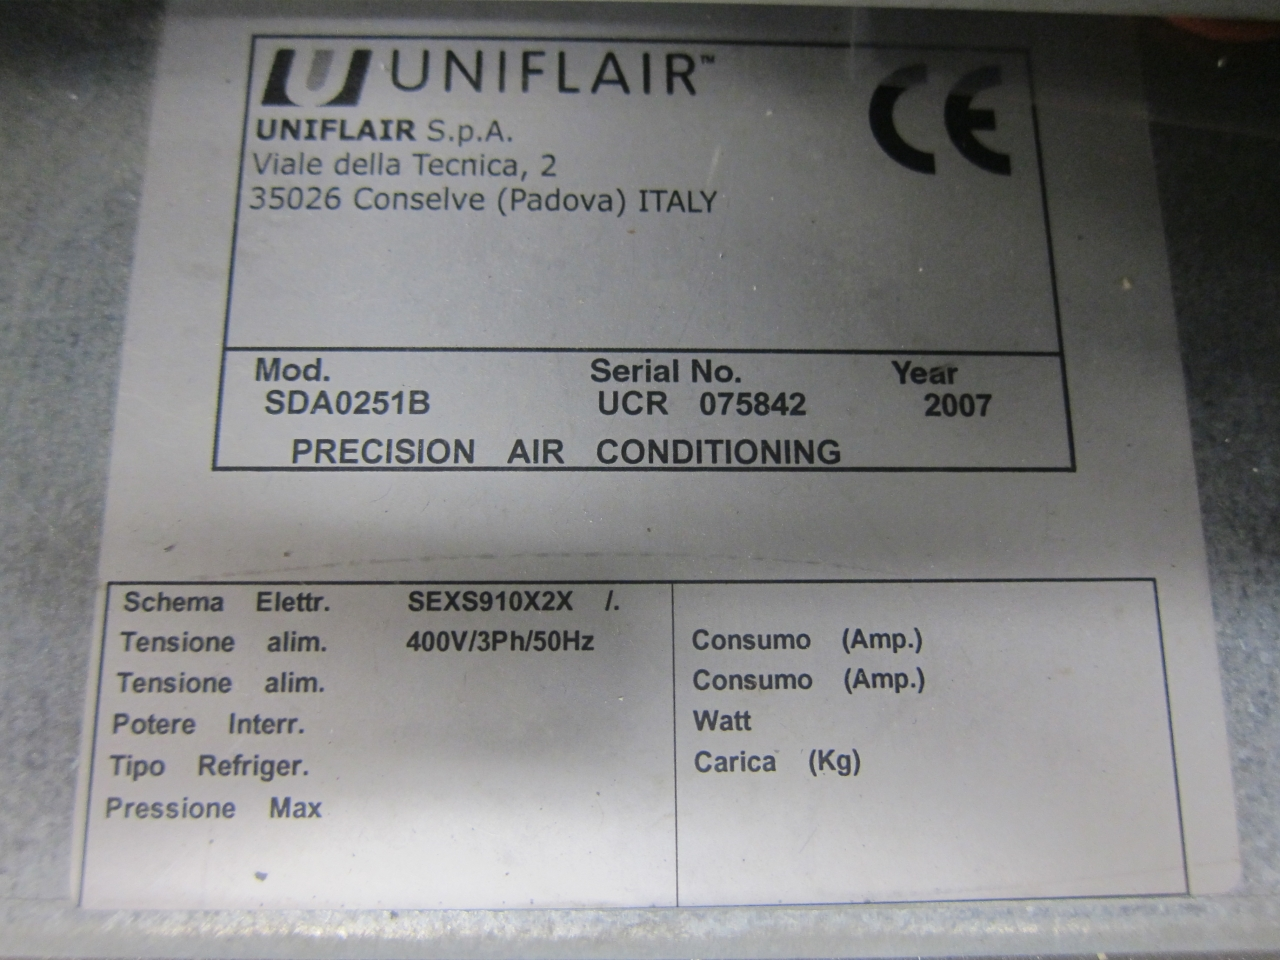 Precision Air Conditioning Hos Bv